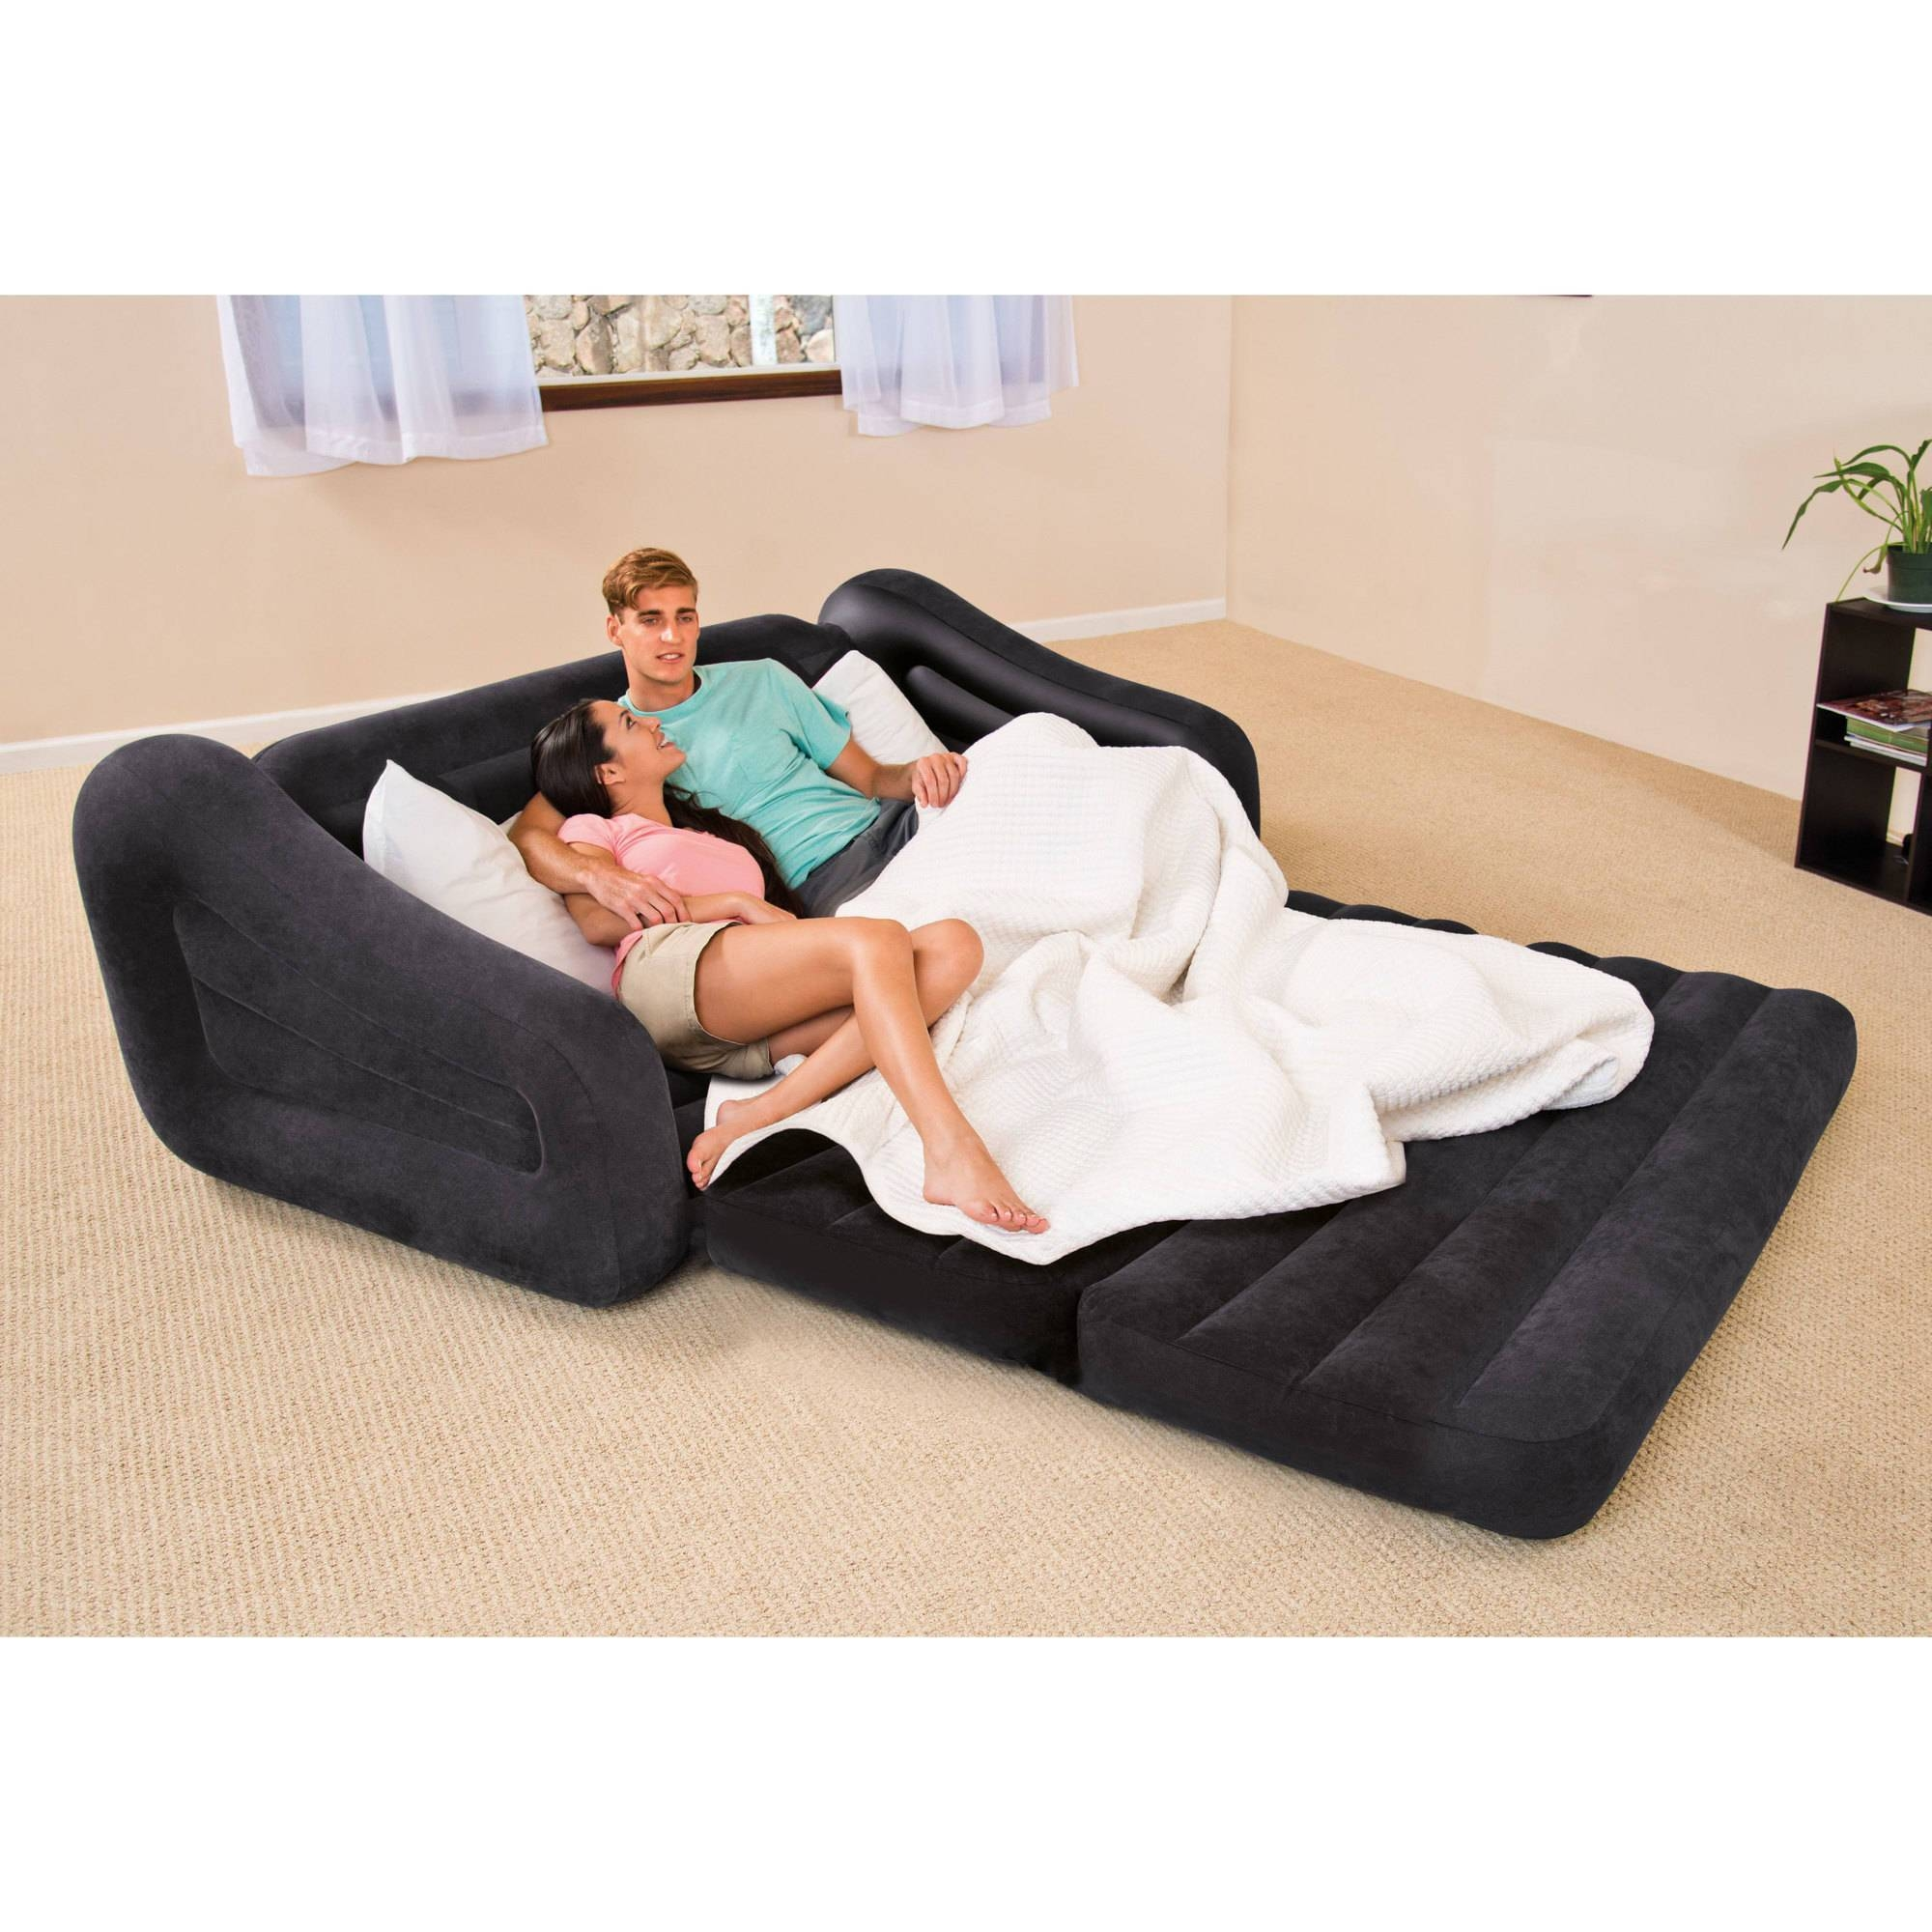 Intex Queen Inflatable Pull Out Sofa Bed - Walmart regarding Pull Out Sofa Chairs (Image 12 of 30)